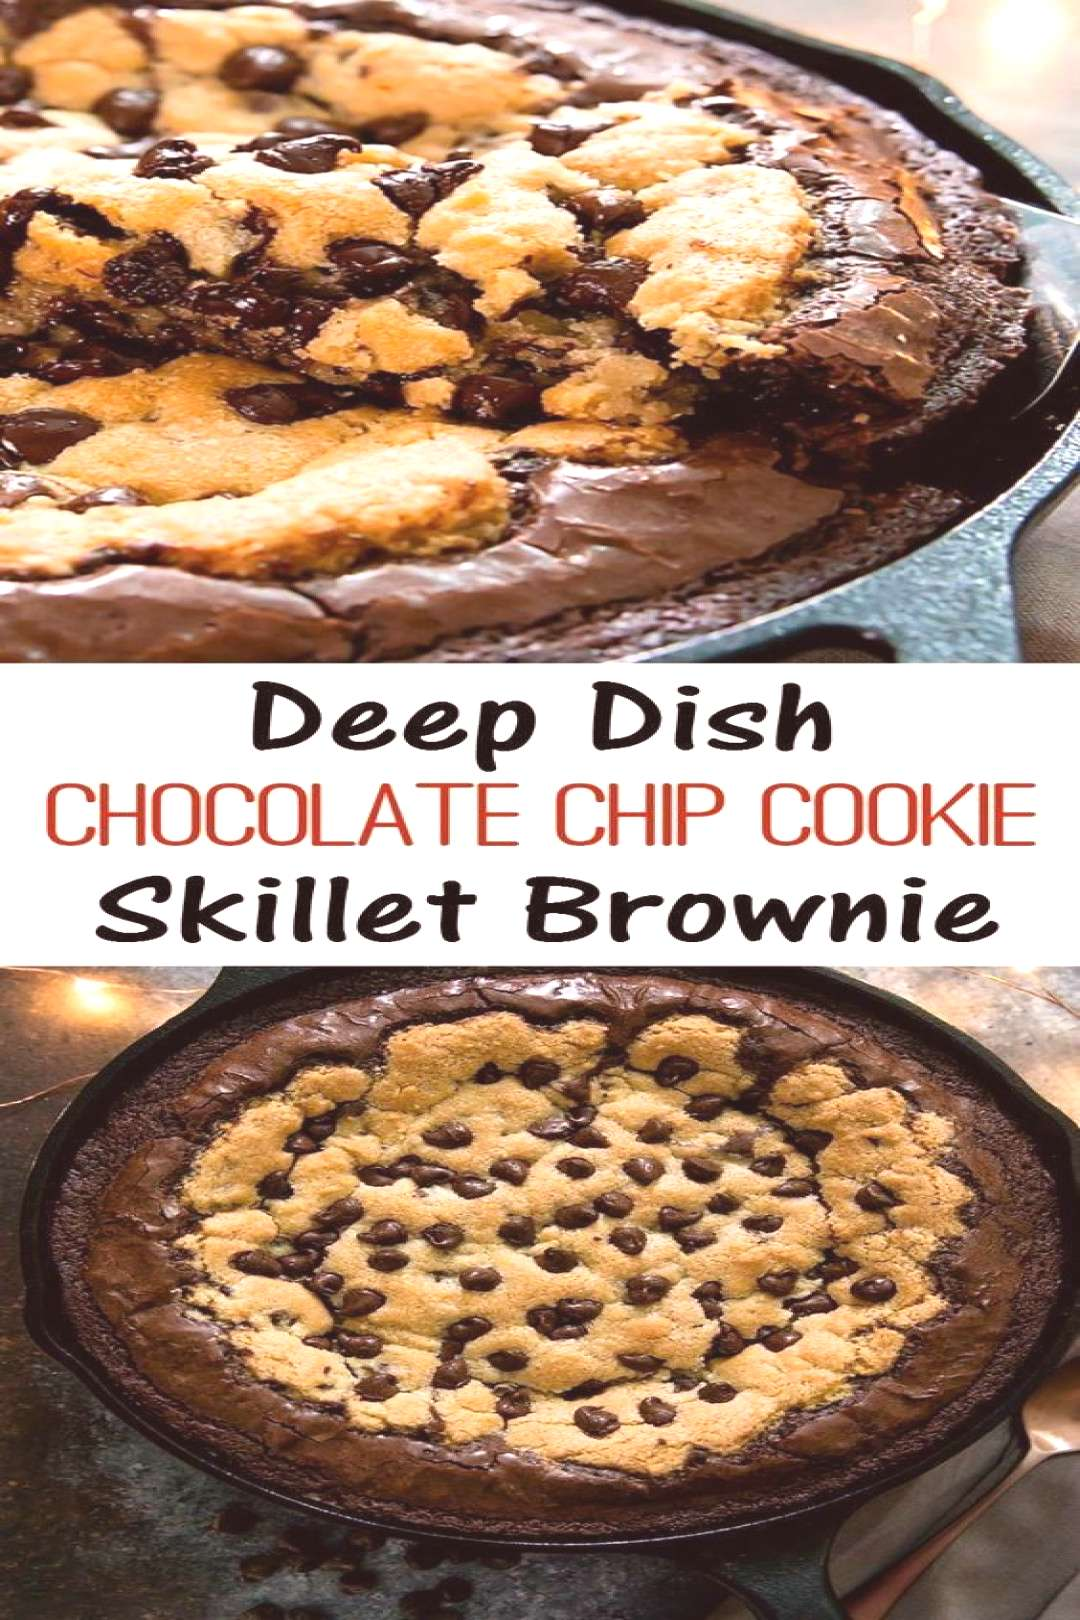 Deep Dish Chocolate Chip Cookie Skillet Brownie and Brookie Cups Recipe is so yumm!! You must see t